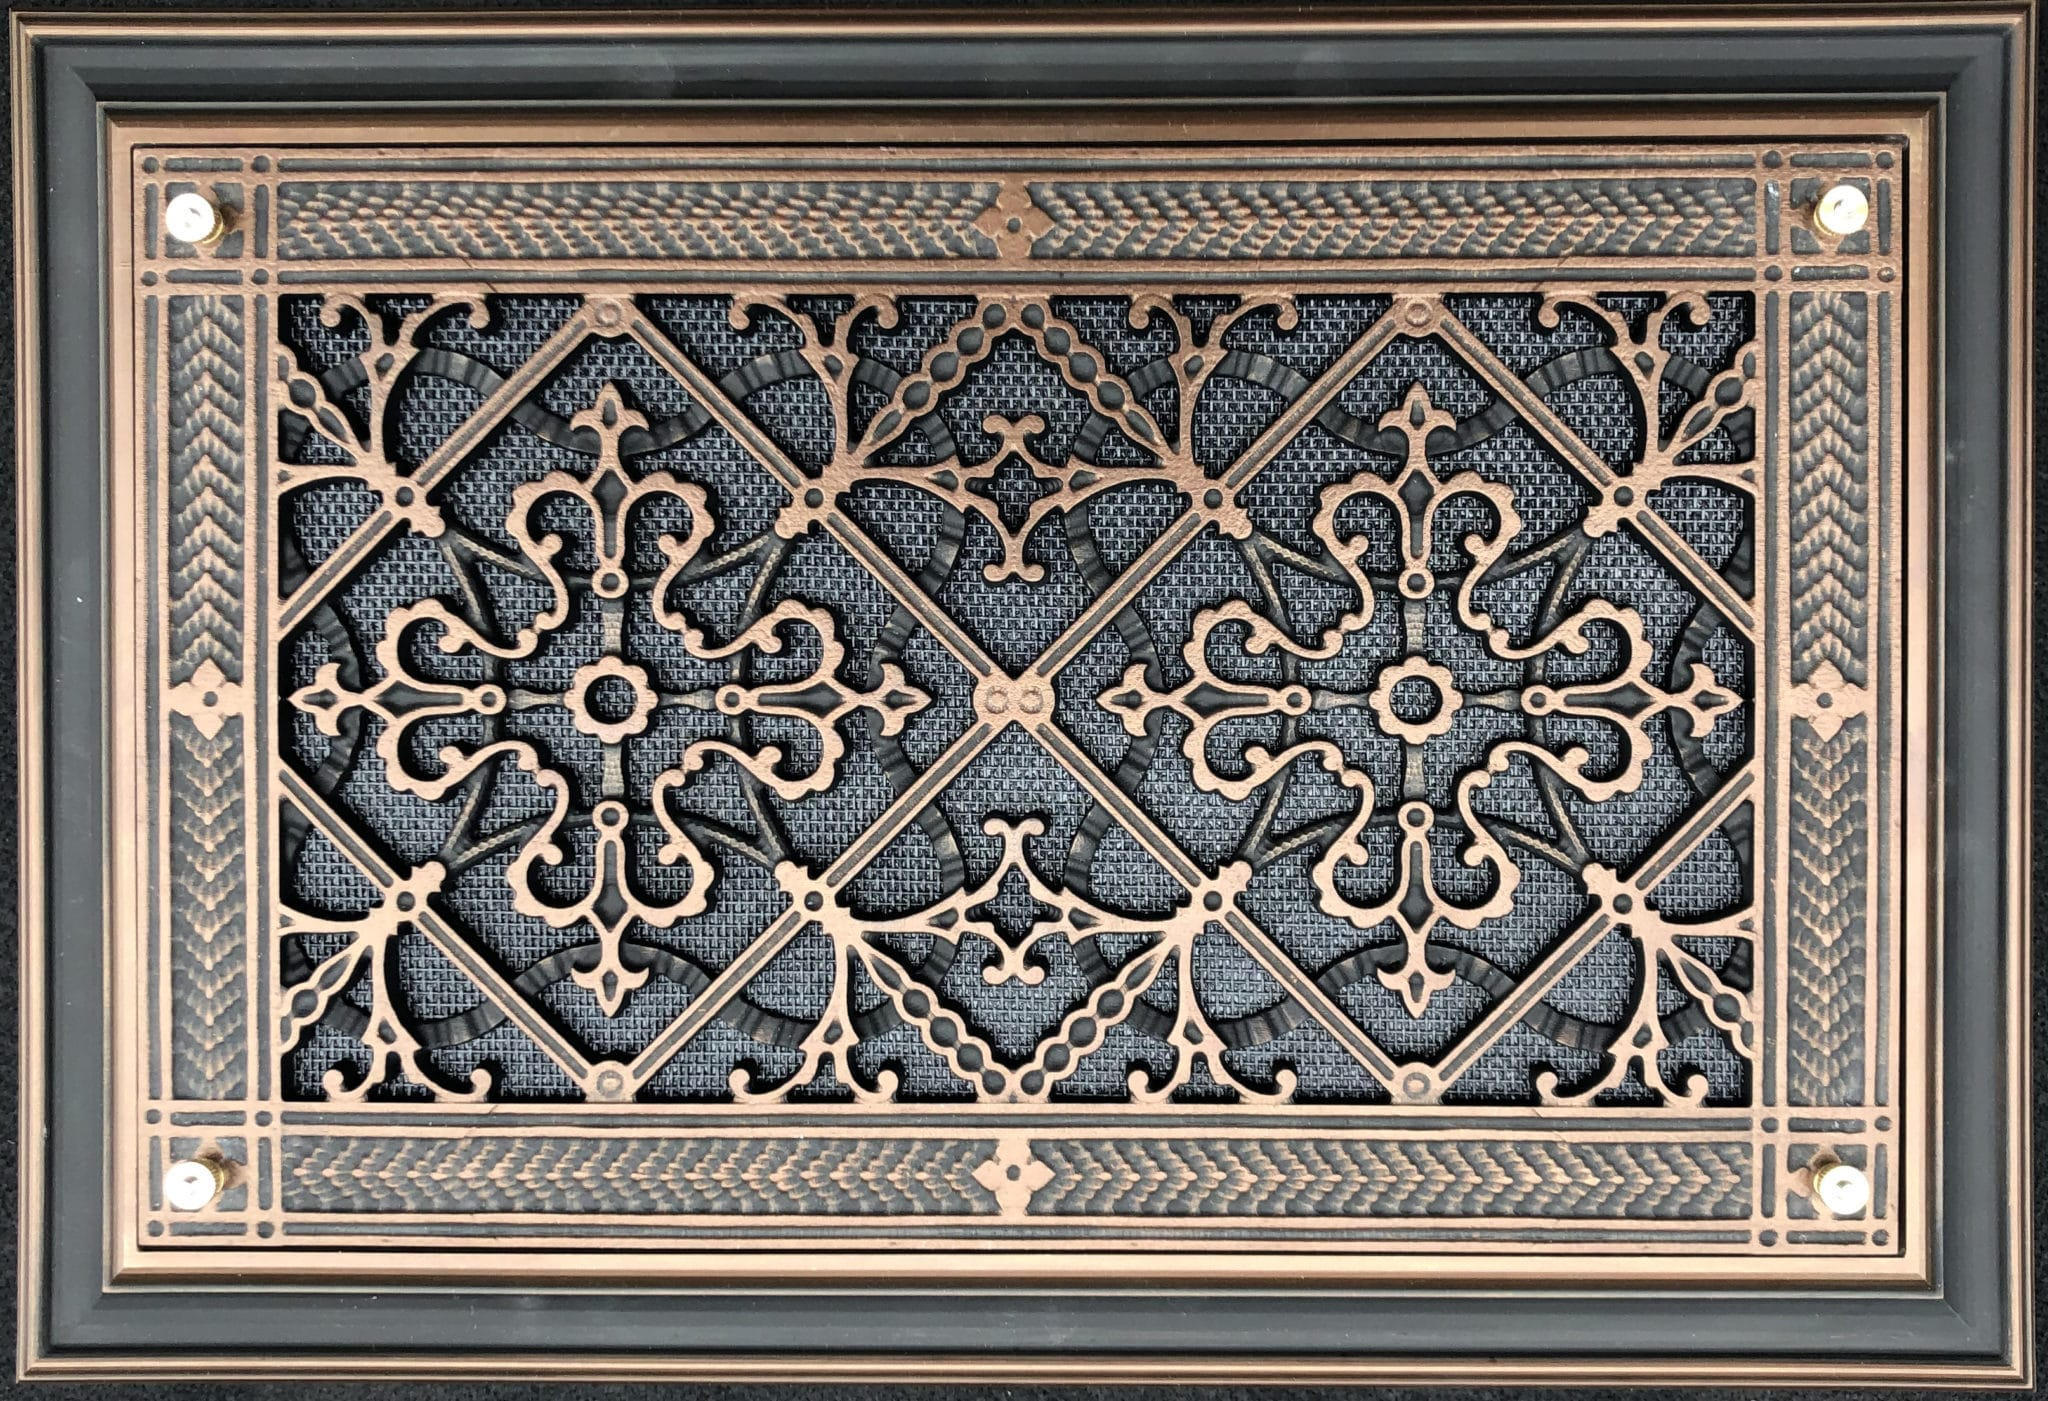 Foundation Vent Cover in Craftsman Style Arts and Crafts